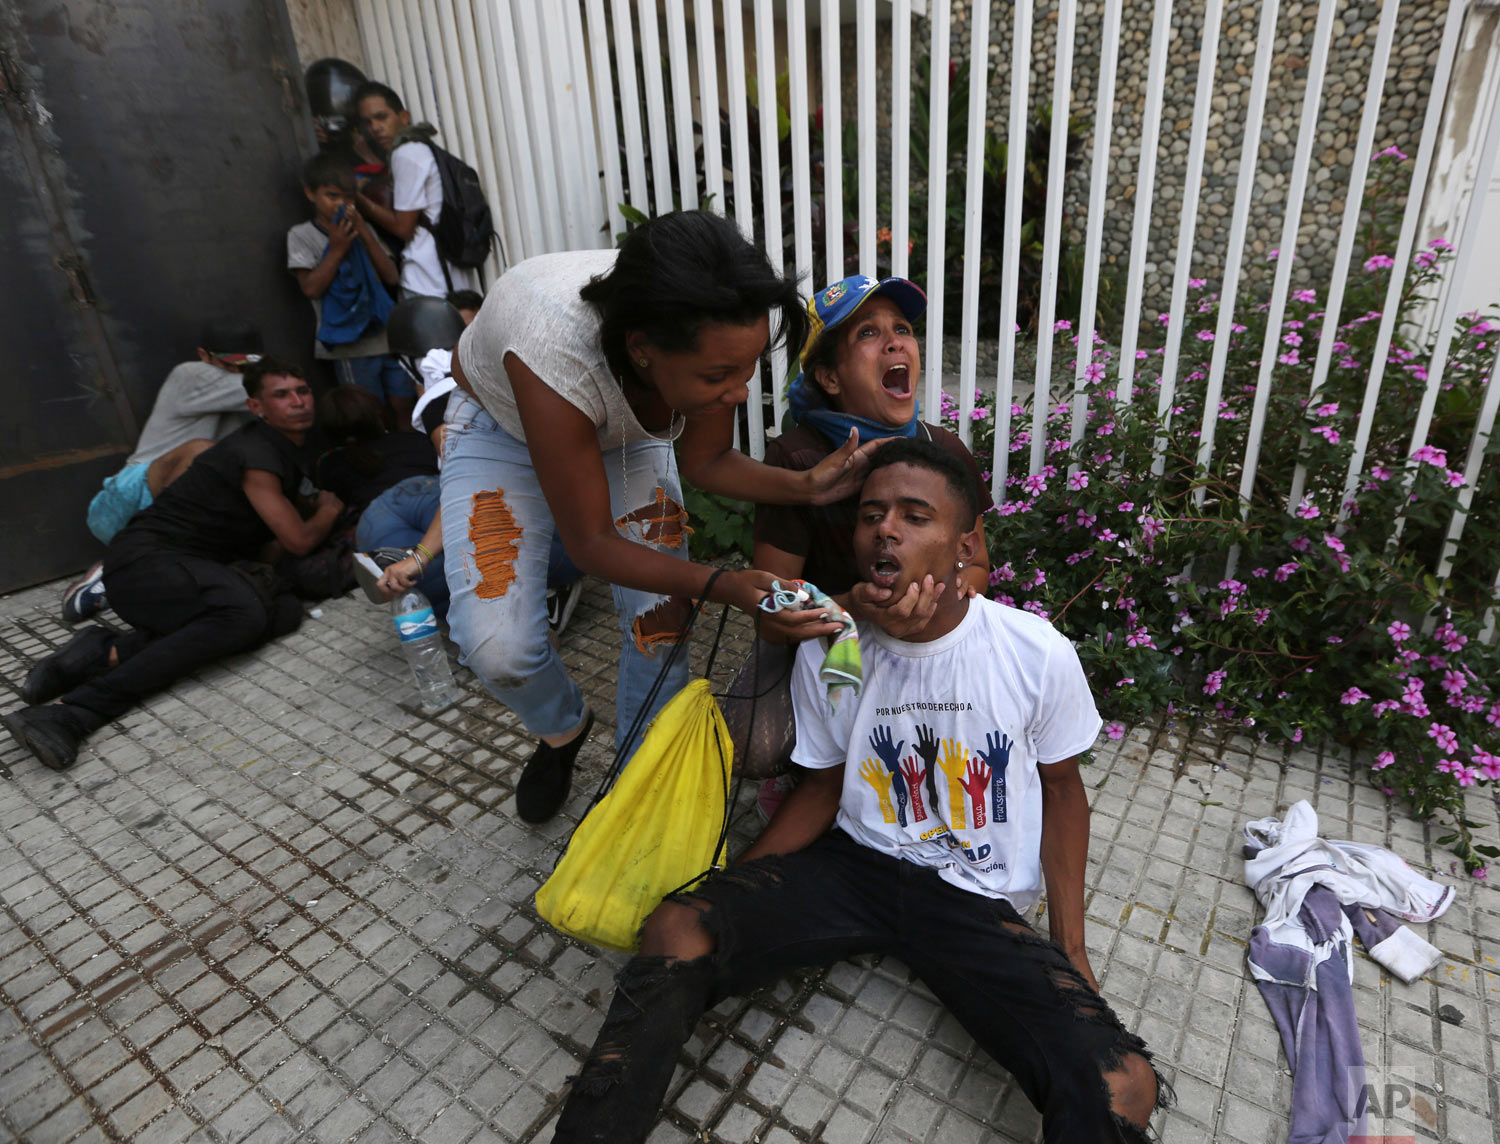 An anti-government protester calls for help as she and another woman help a fellow demonstrator who is overcome by teargas during clashes with security forces in Caracas, Venezuela, Wednesday, May 1, 2019. Opposition leader Juan Guaidó called for Venezuelans to fill streets around the country to demand President Nicolás Maduro's ouster. (AP Photo/Fernando Llano)